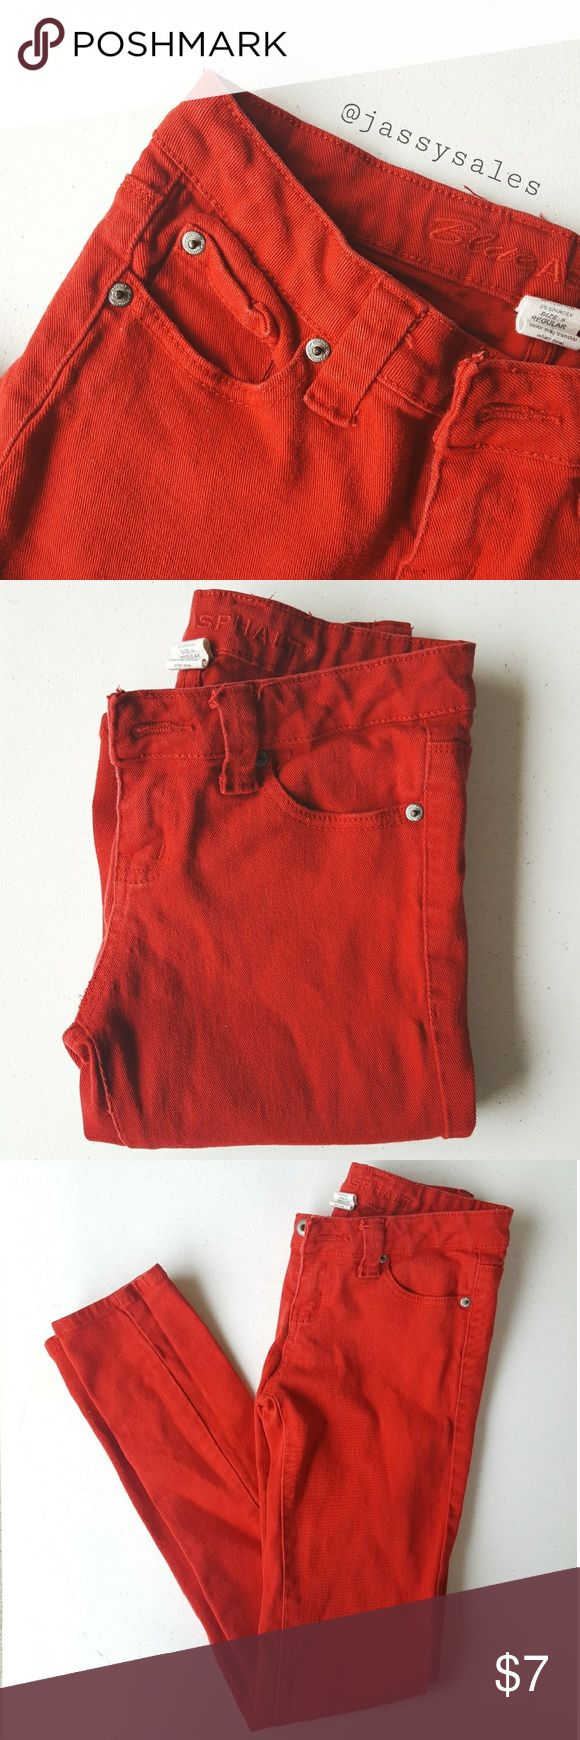 Wet Seal Blue Asphalt Red Skinny Pants 》 Size: 4 WOMEN'S 》 Condition: Very good! These pants have been well loved but still have lots of life left. They have a few loose threads but other than that they are good. Blue Asphalt Pants Skinny